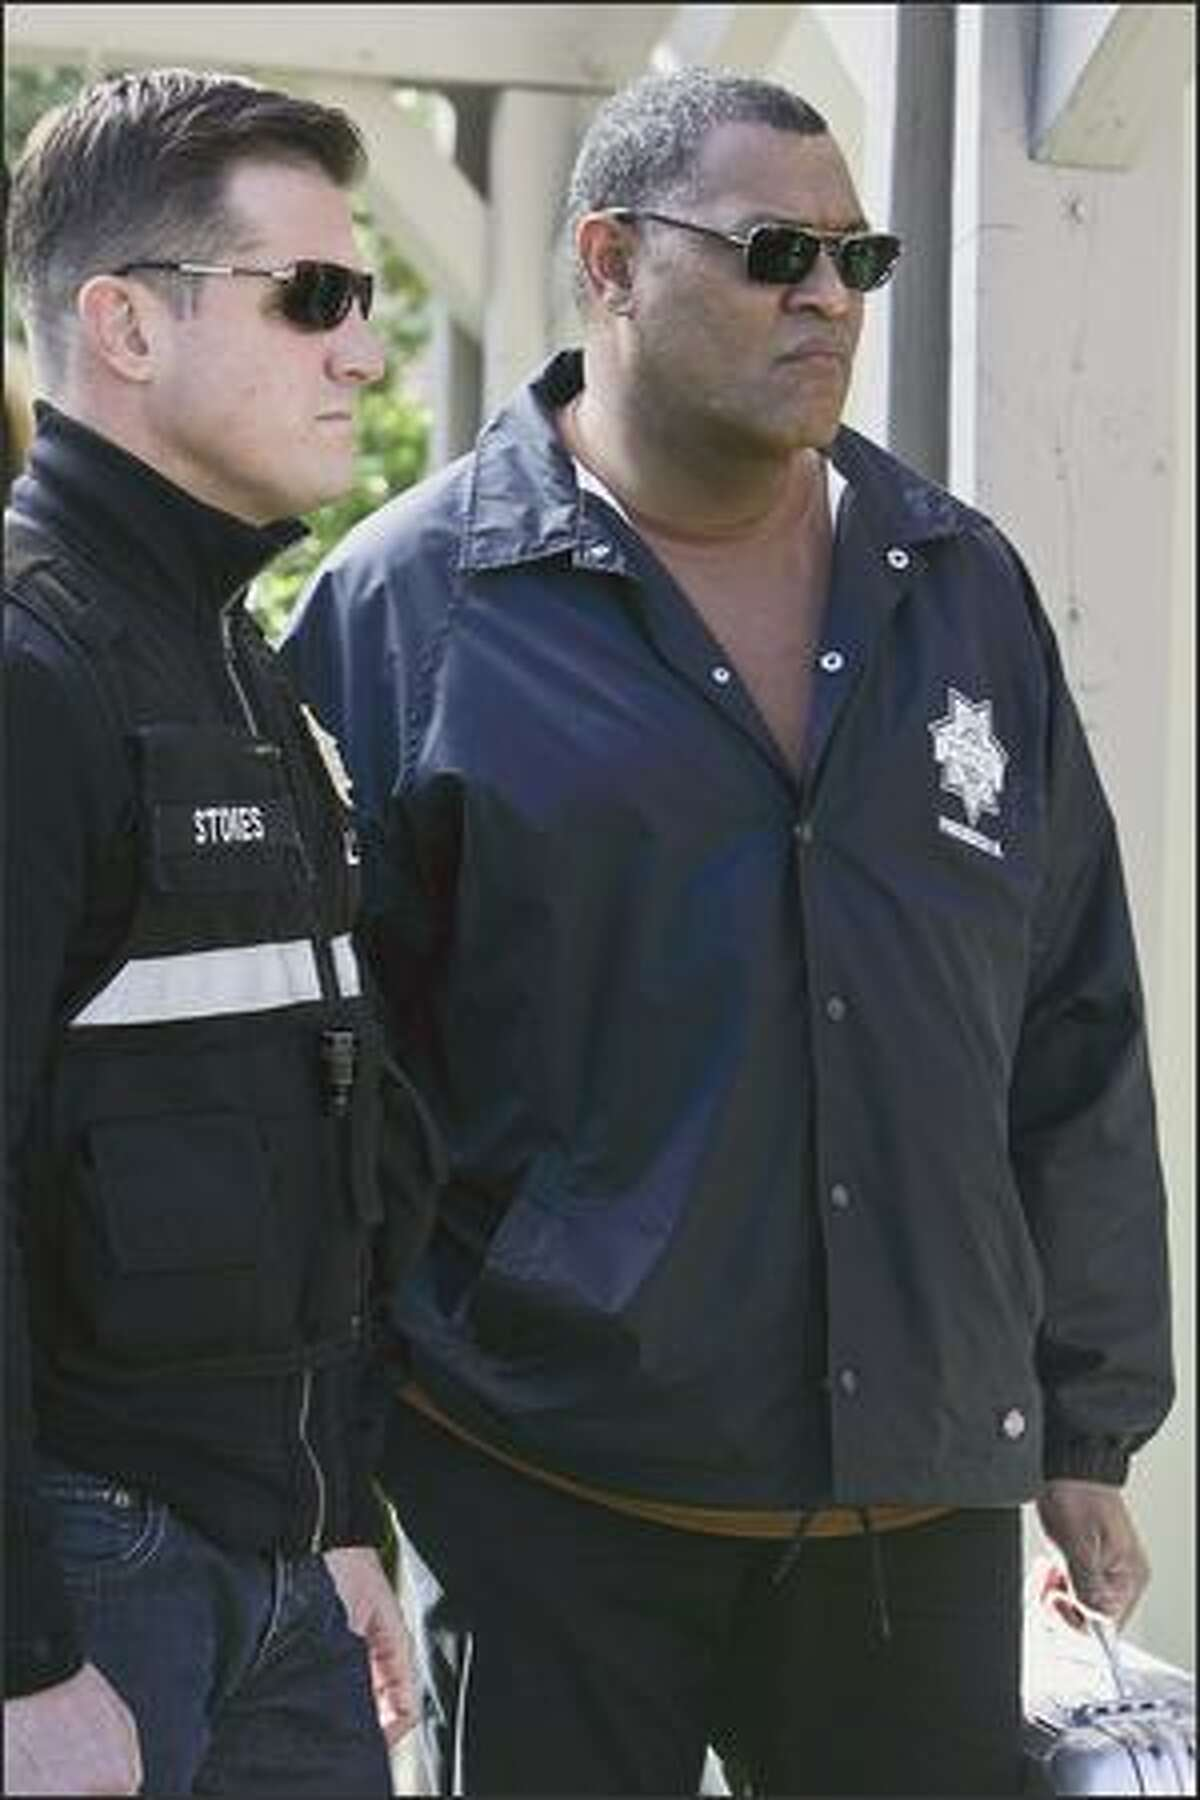 Ray Langston (Laurence Fishburne, right) is the new sheriff in town on